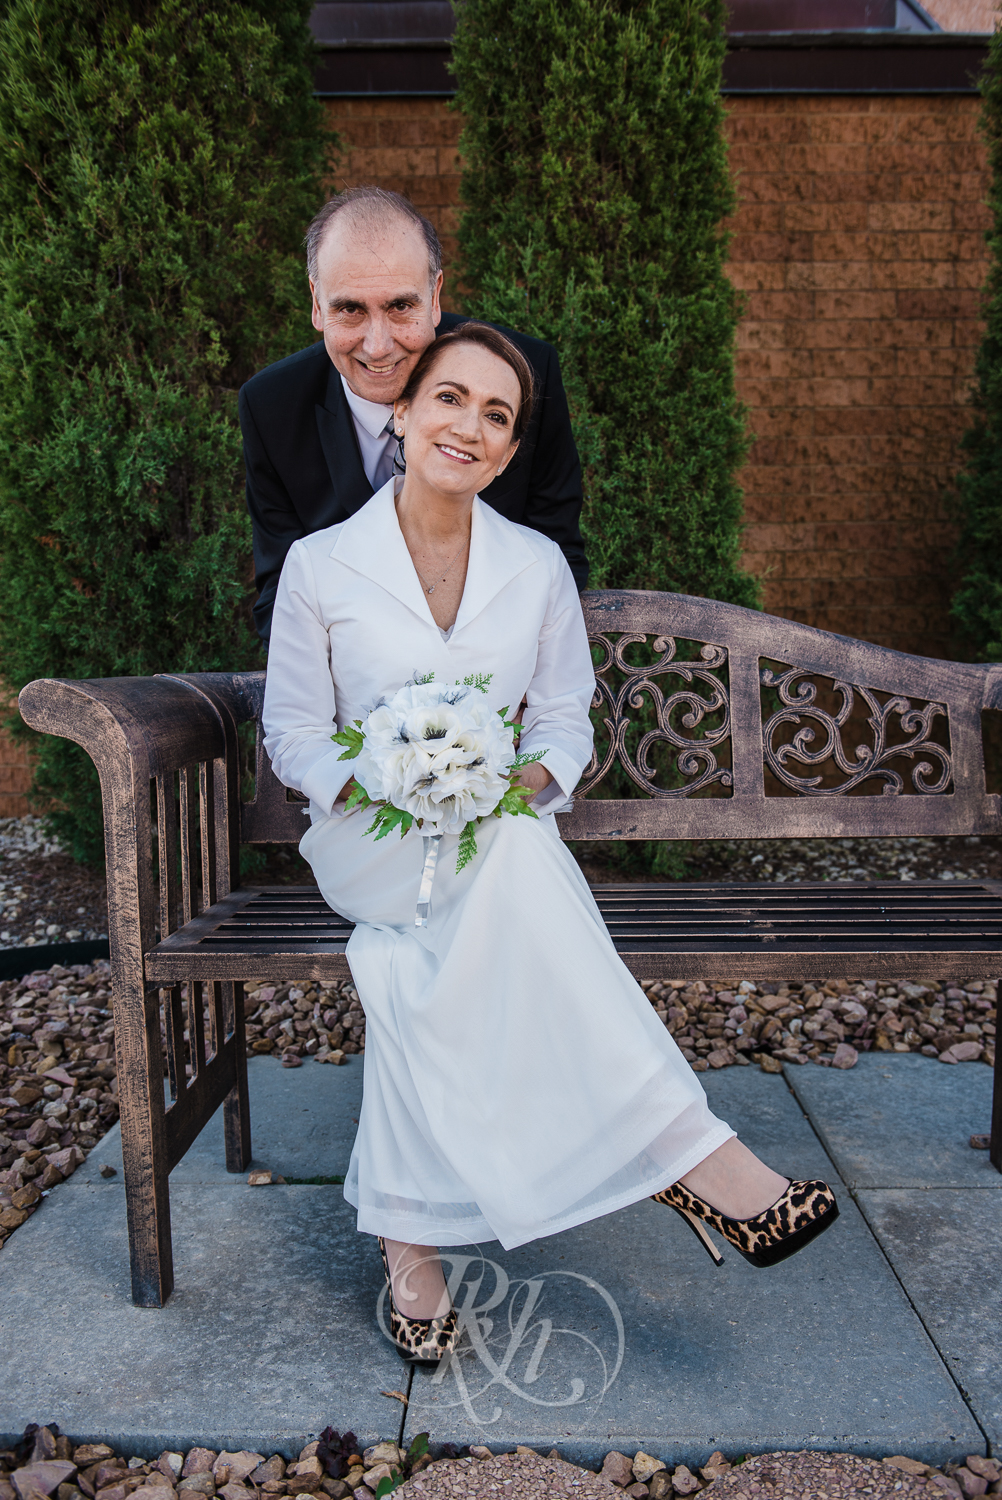 Lakeville Wedding Photography - Bertie & Maurico - RKH Images-14